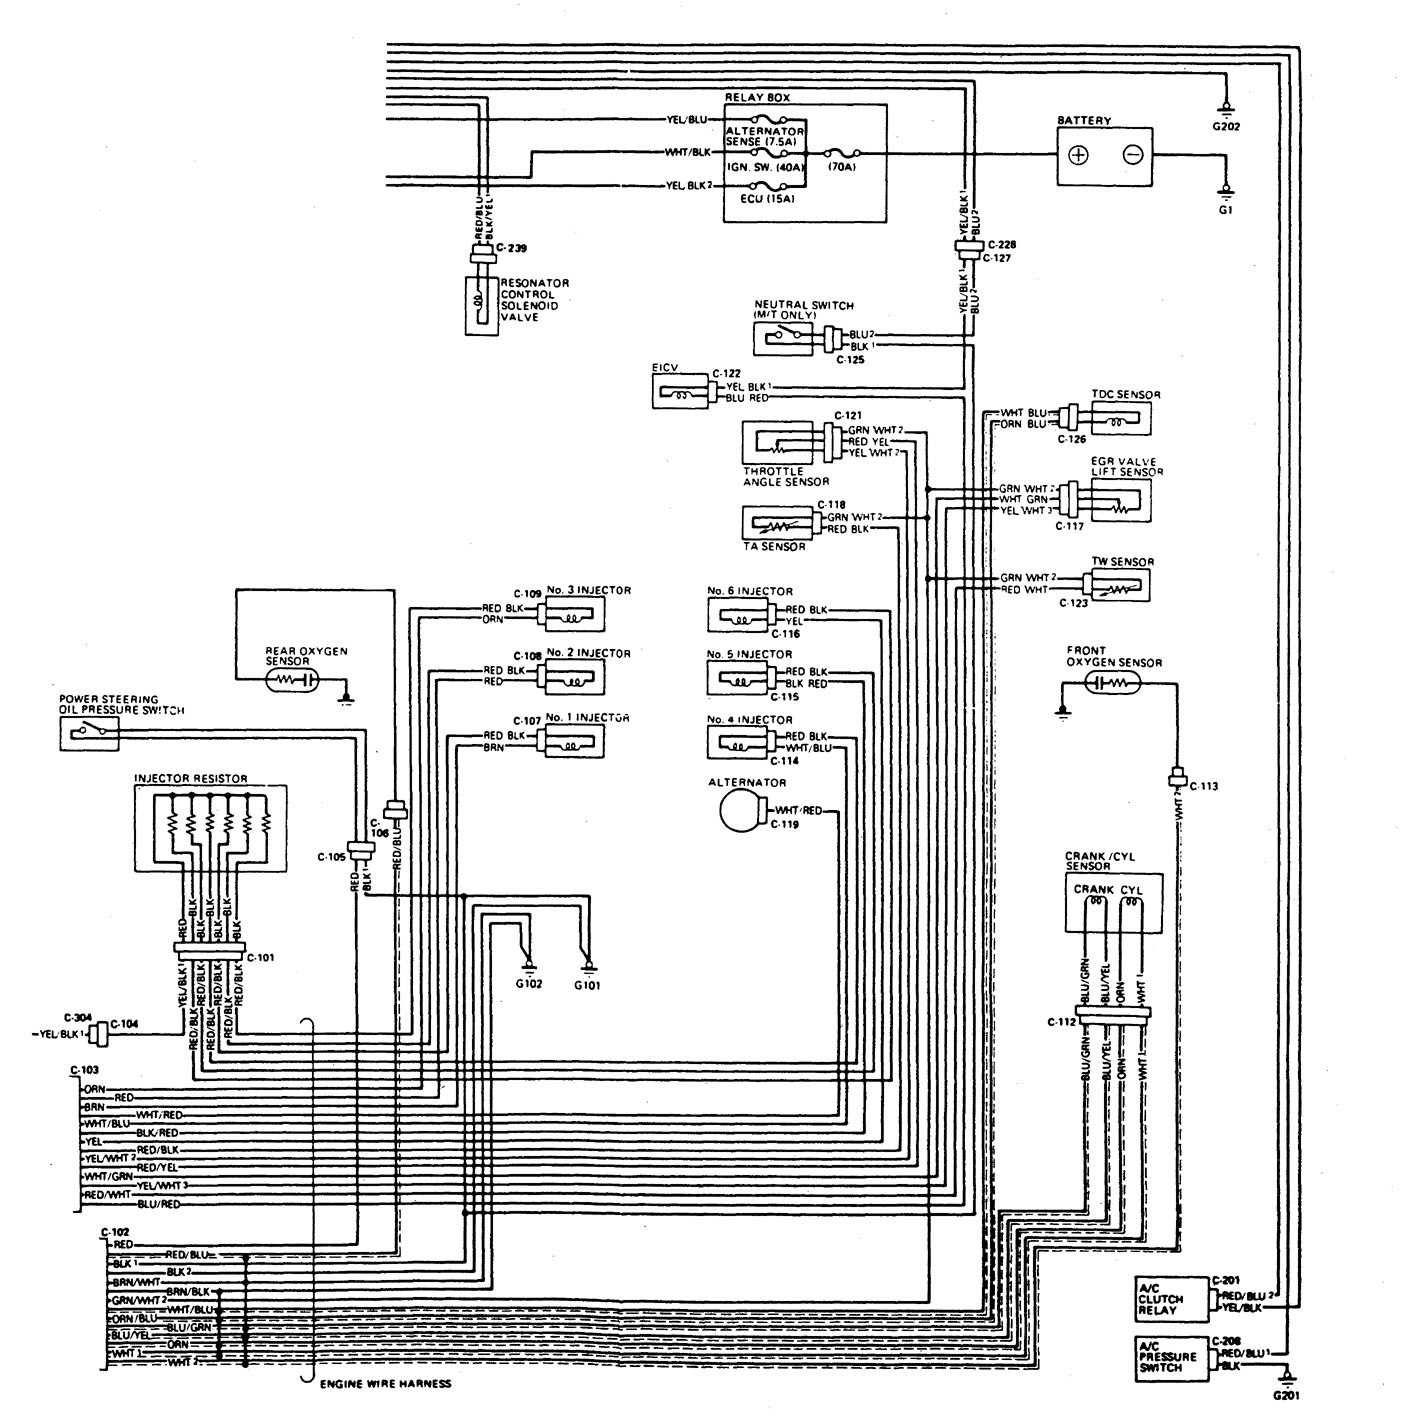 91 Ford Tempo Fuse Panel Diagram. Ford. Auto Fuse Box Diagram